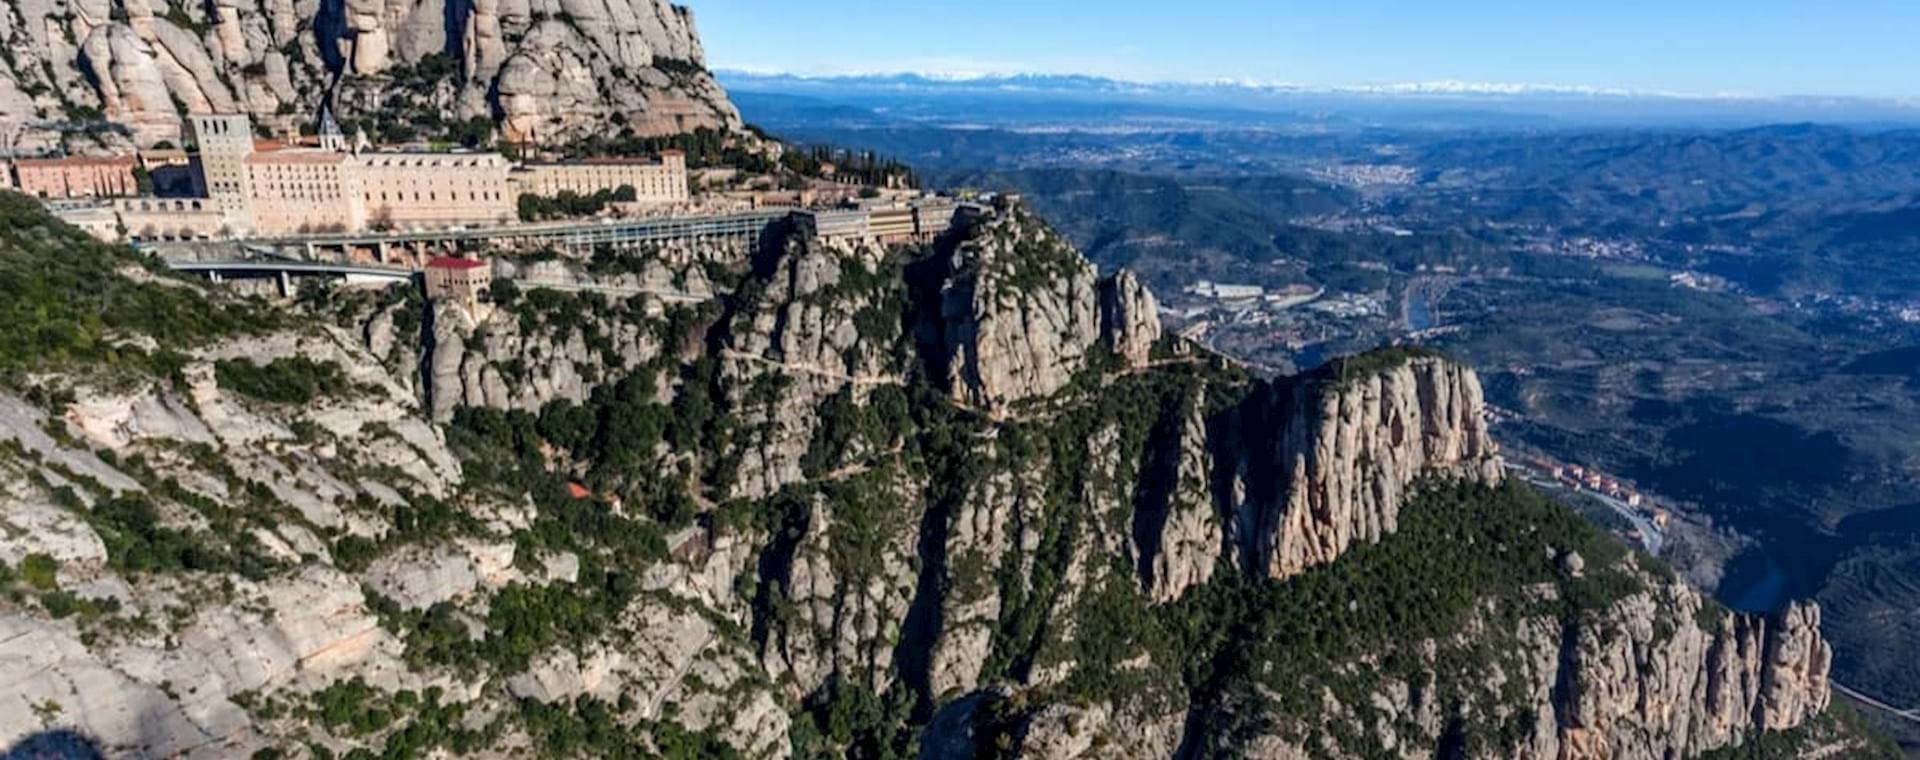 Impressive mountain formation and monastery in Montserrat, Spain